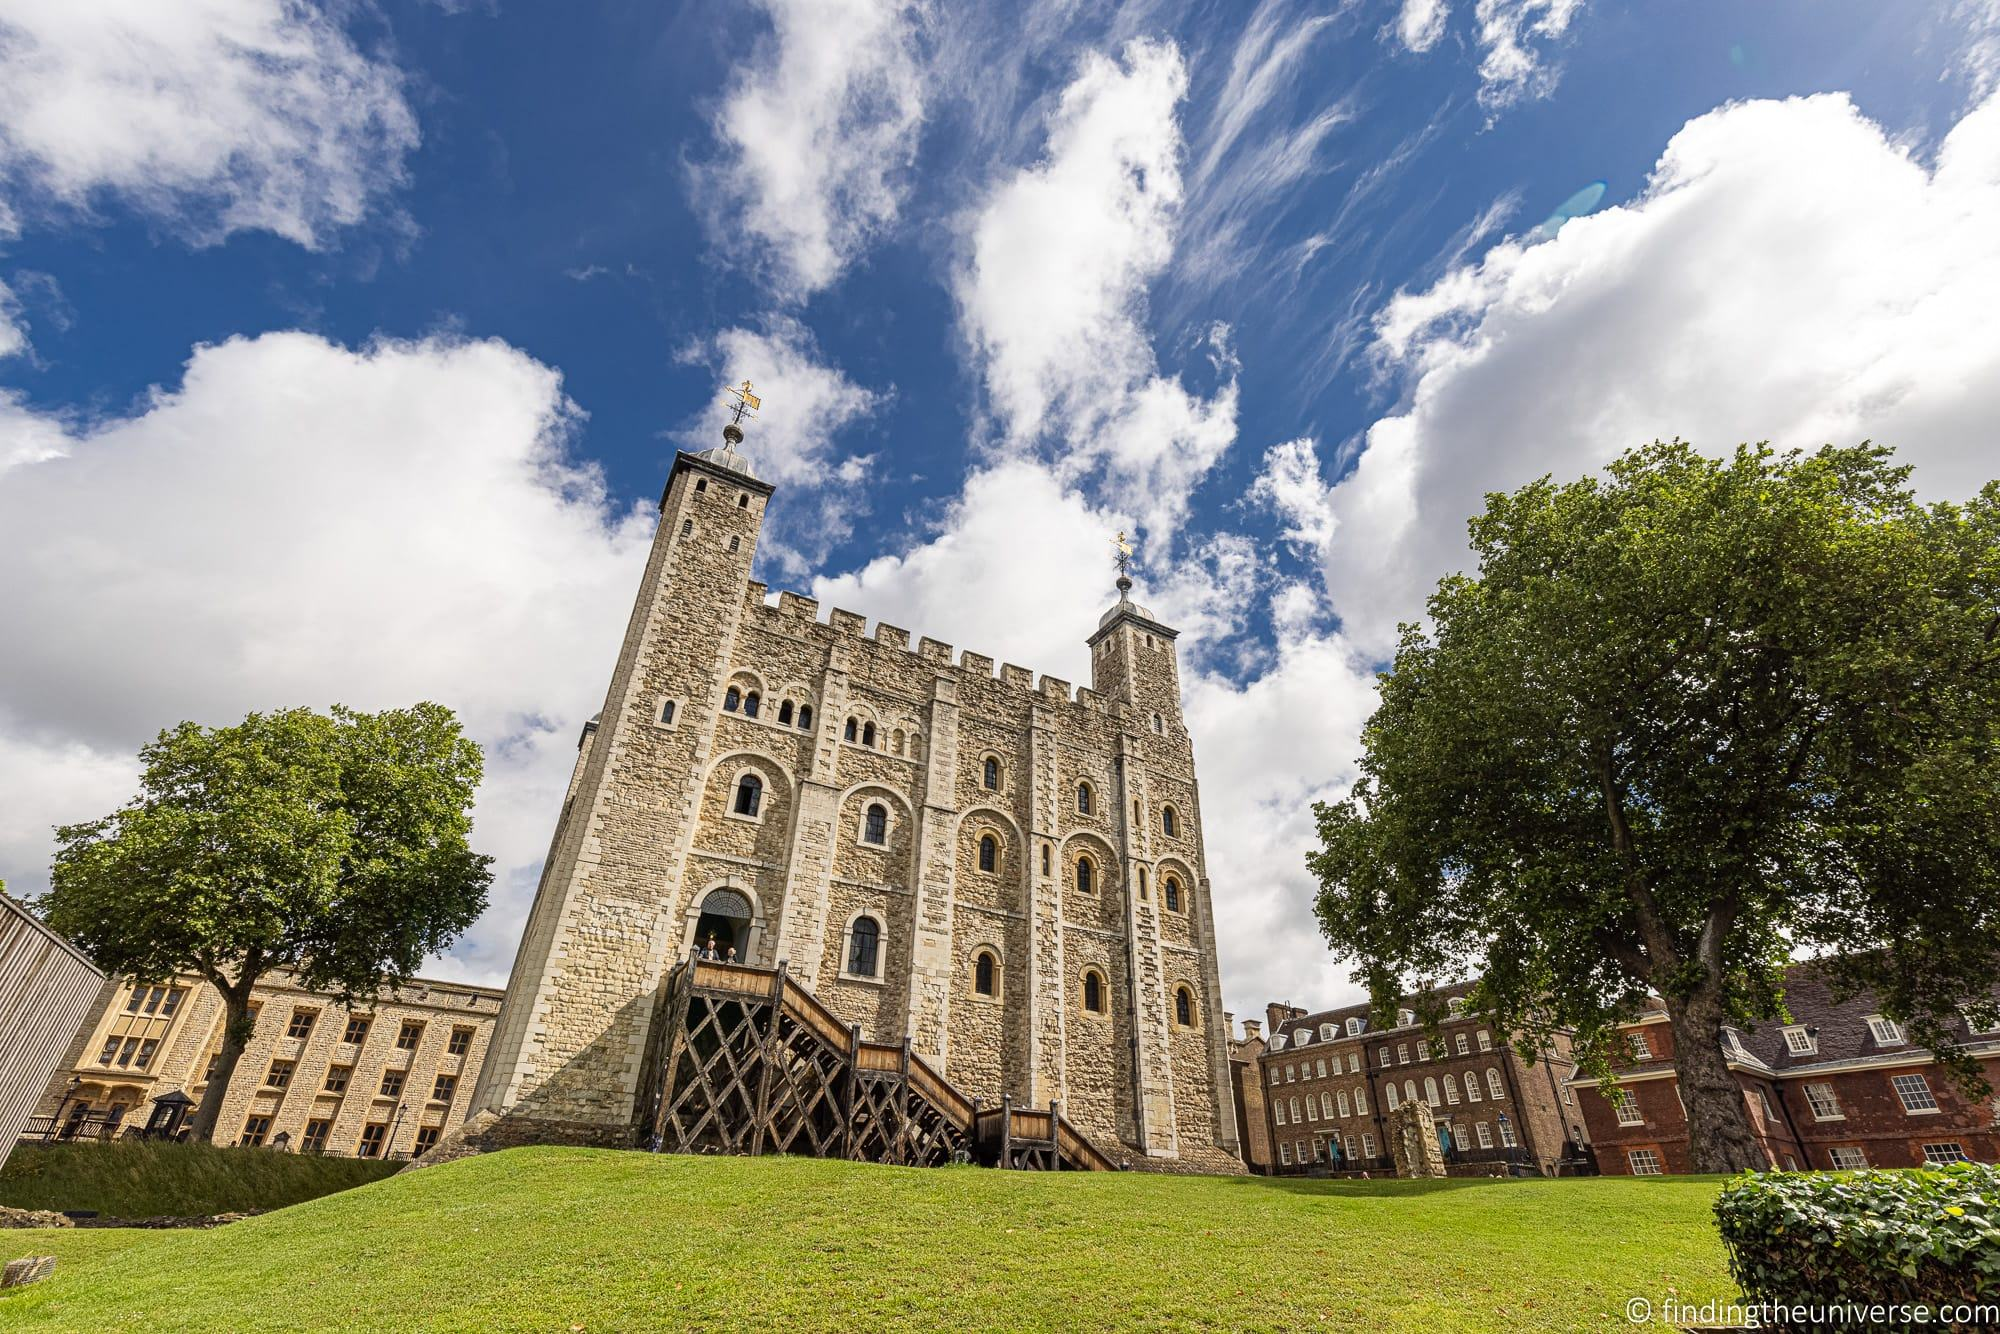 White Tower Tower of London